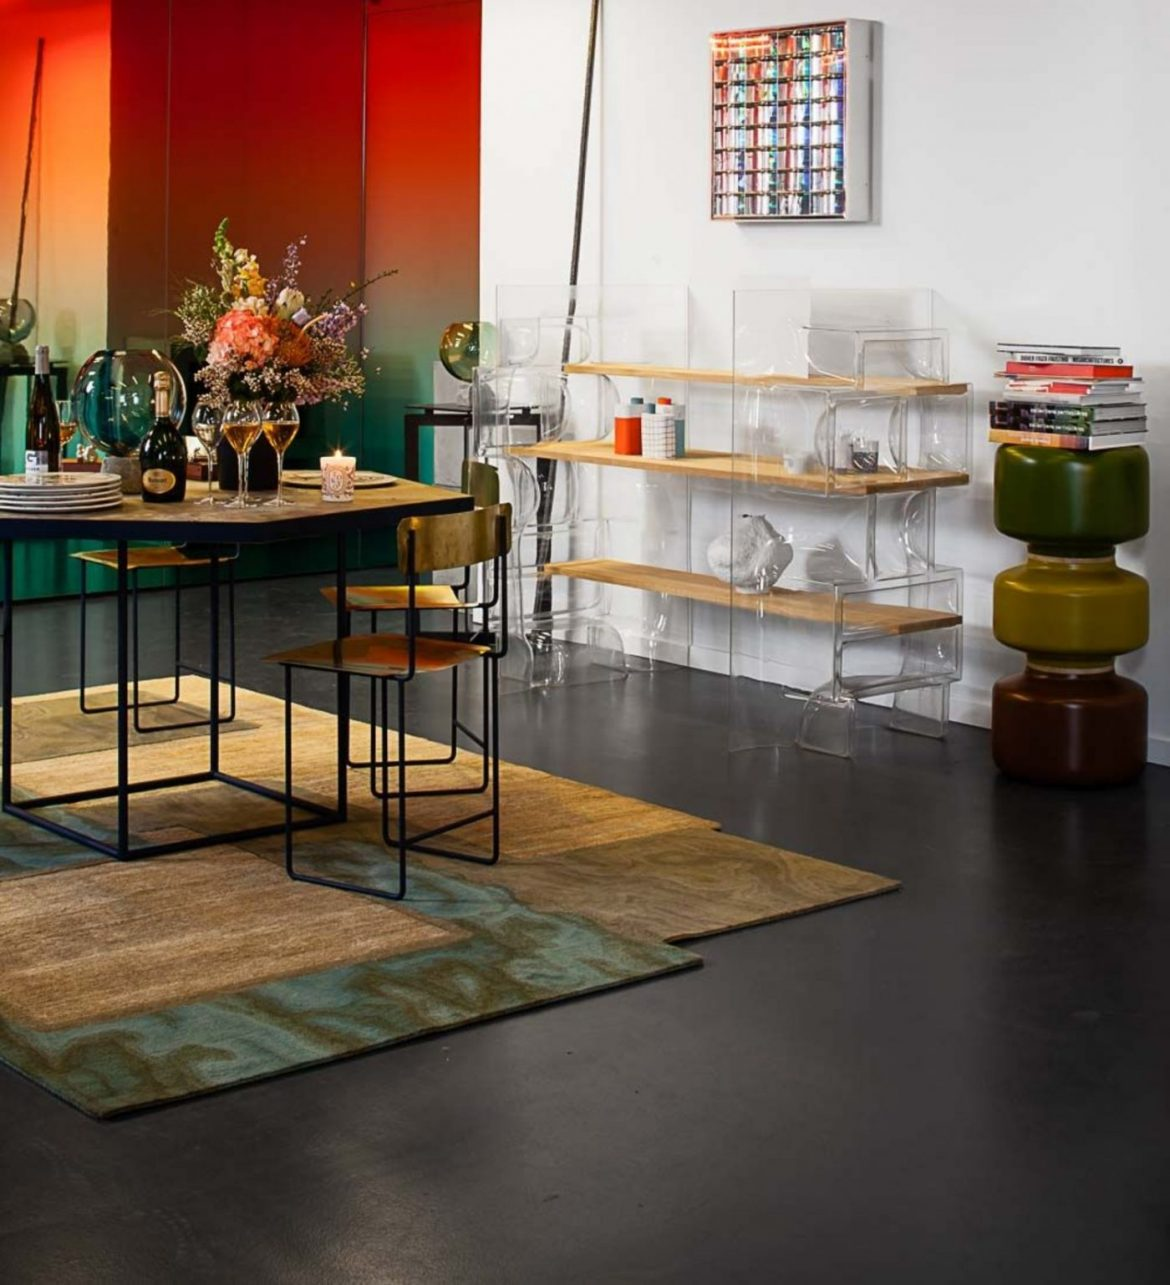 maison et objet 2019 Maison Et Objet 2019: The Stands That You Can't Miss Maison Et Objet 2019 The Stands That You Cant Miss 5